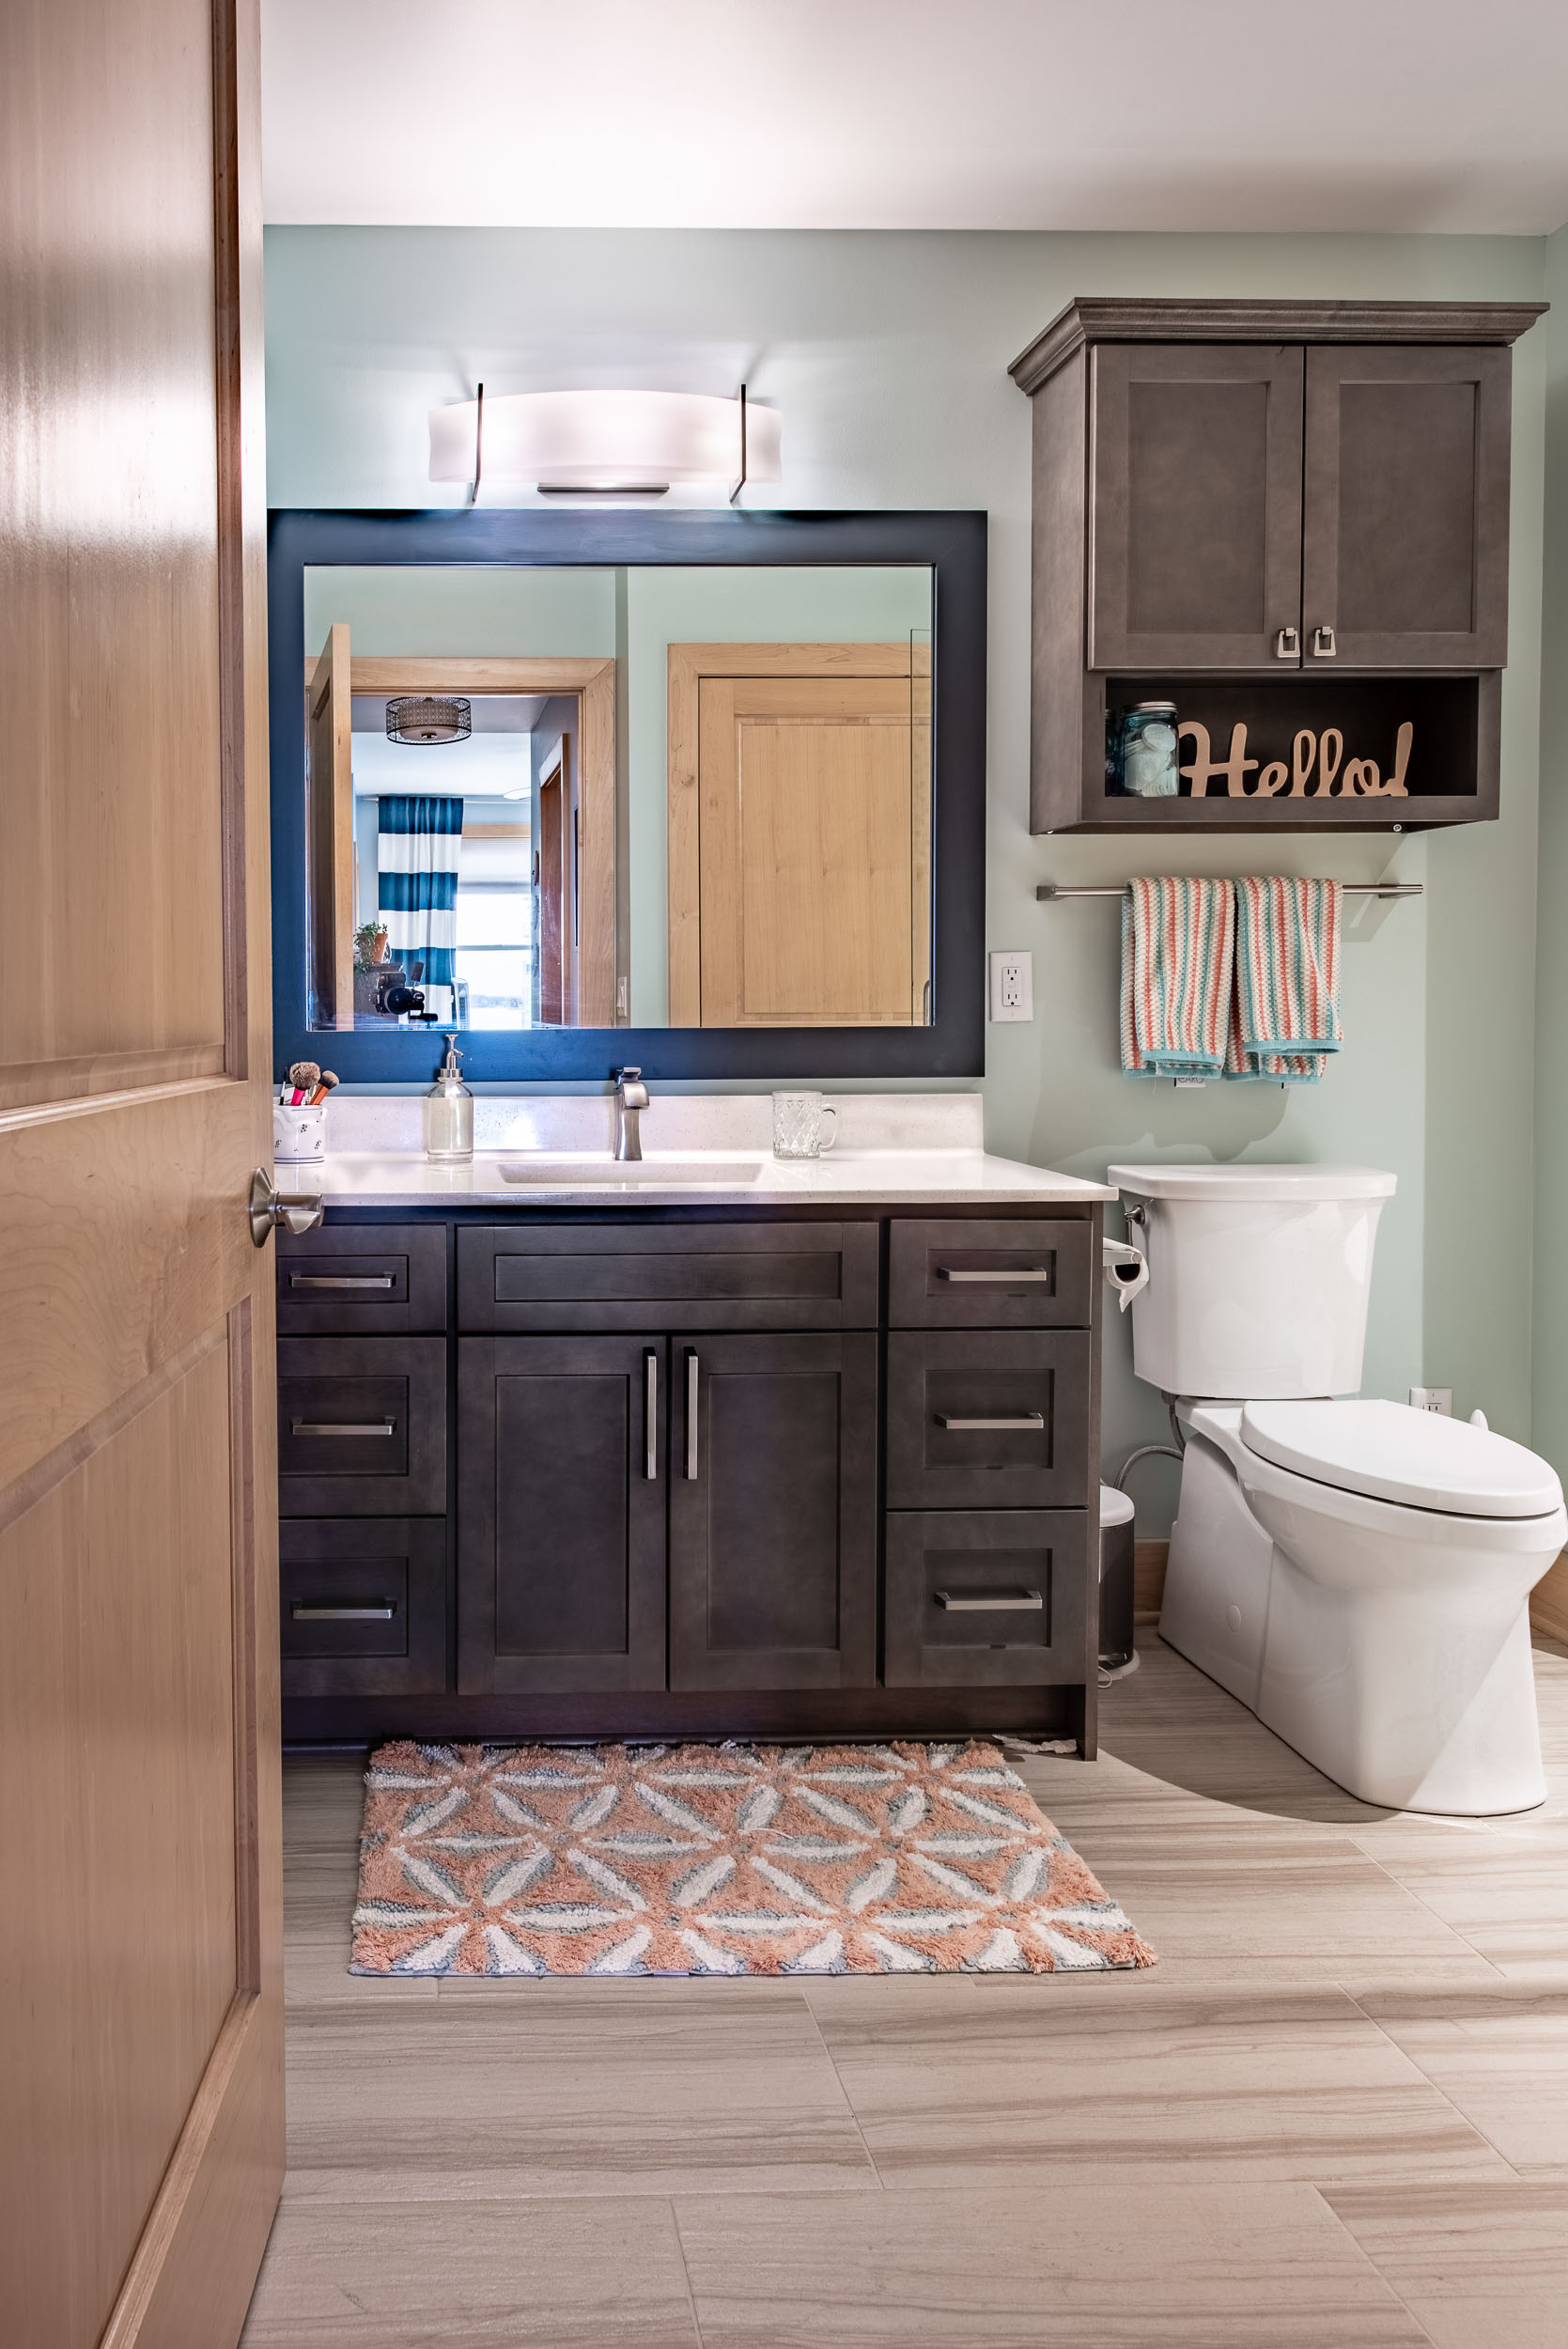 Th vanity is by Homecrest cabinets. The door style is Sedona in a Dover stain.